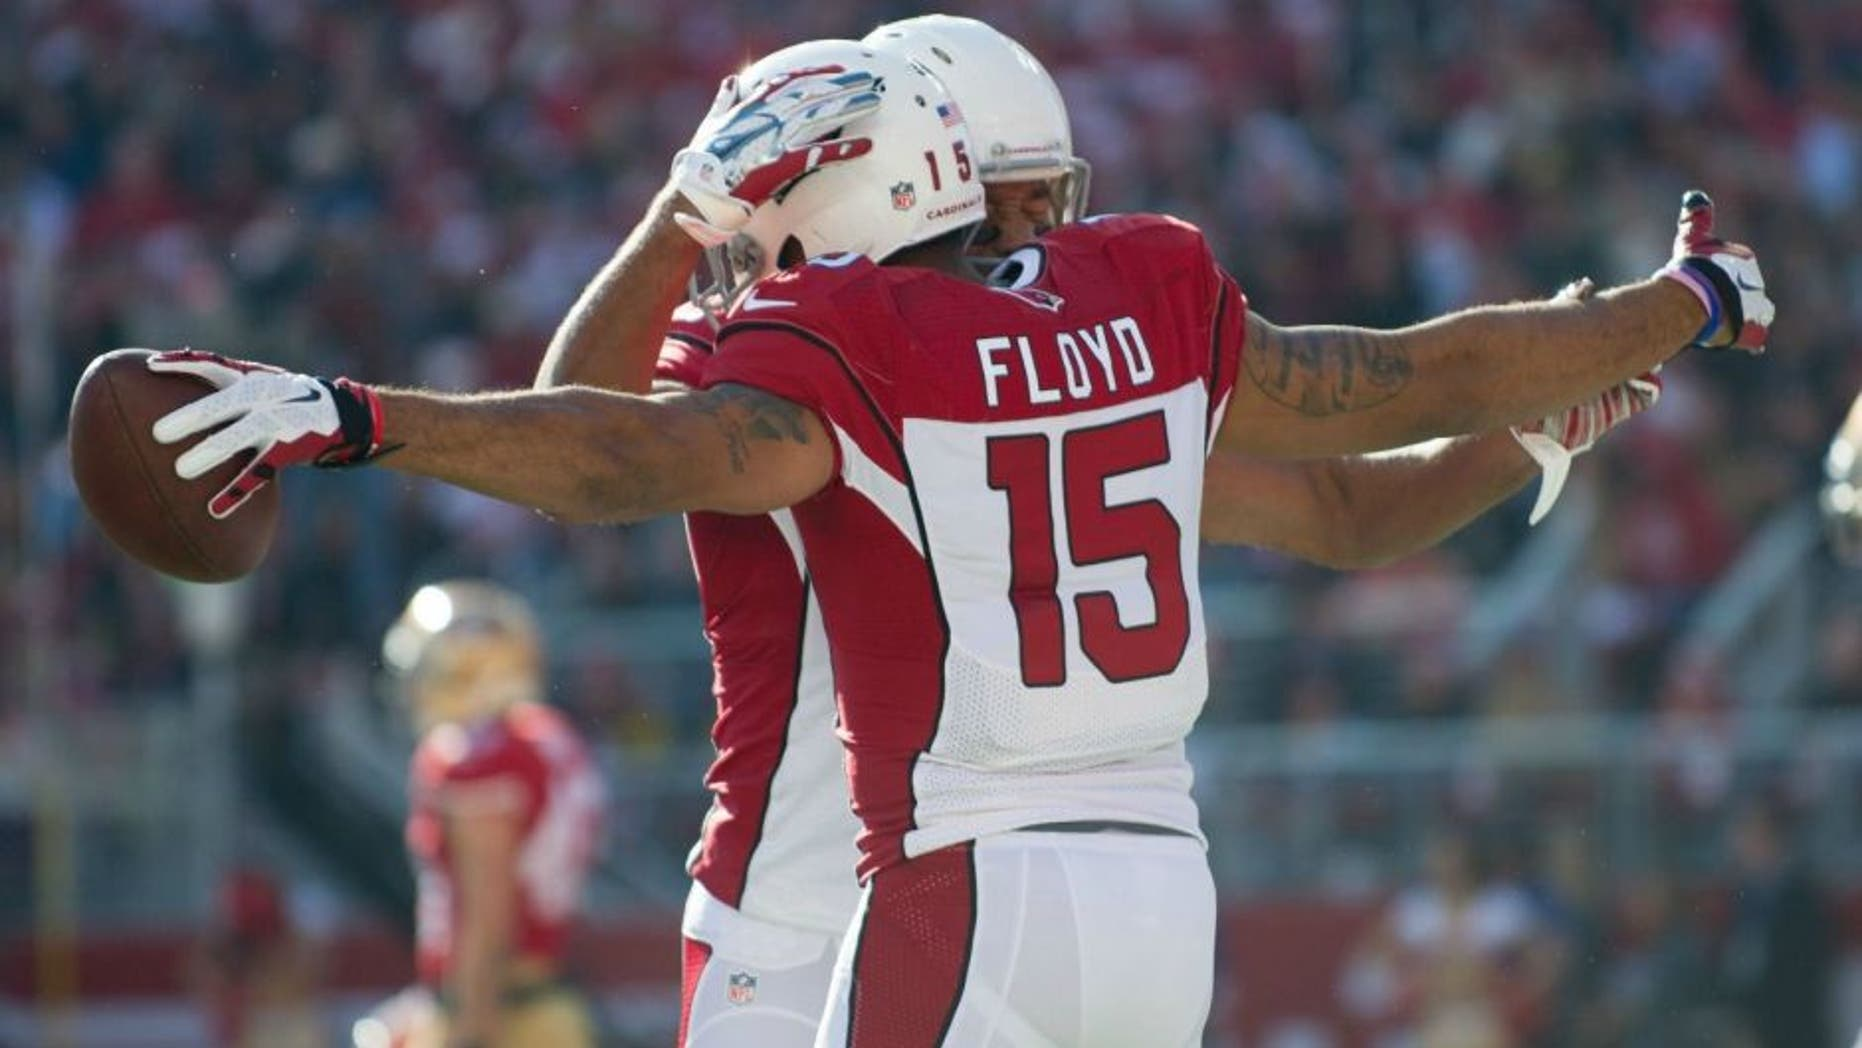 Dec 28, 2014; Santa Clara, CA, USA; Arizona Cardinals wide receiver Michael Floyd (15) celebrates with wide receiver Larry Fitzgerald (11) after scoring a touchdown during the first quarter against the San Francisco 49ers at Levi's Stadium. The against the San Francisco 49ers defeated the Arizona Cardinals 20-17. Mandatory Credit: Ed Szczepanski-USA TODAY Sports